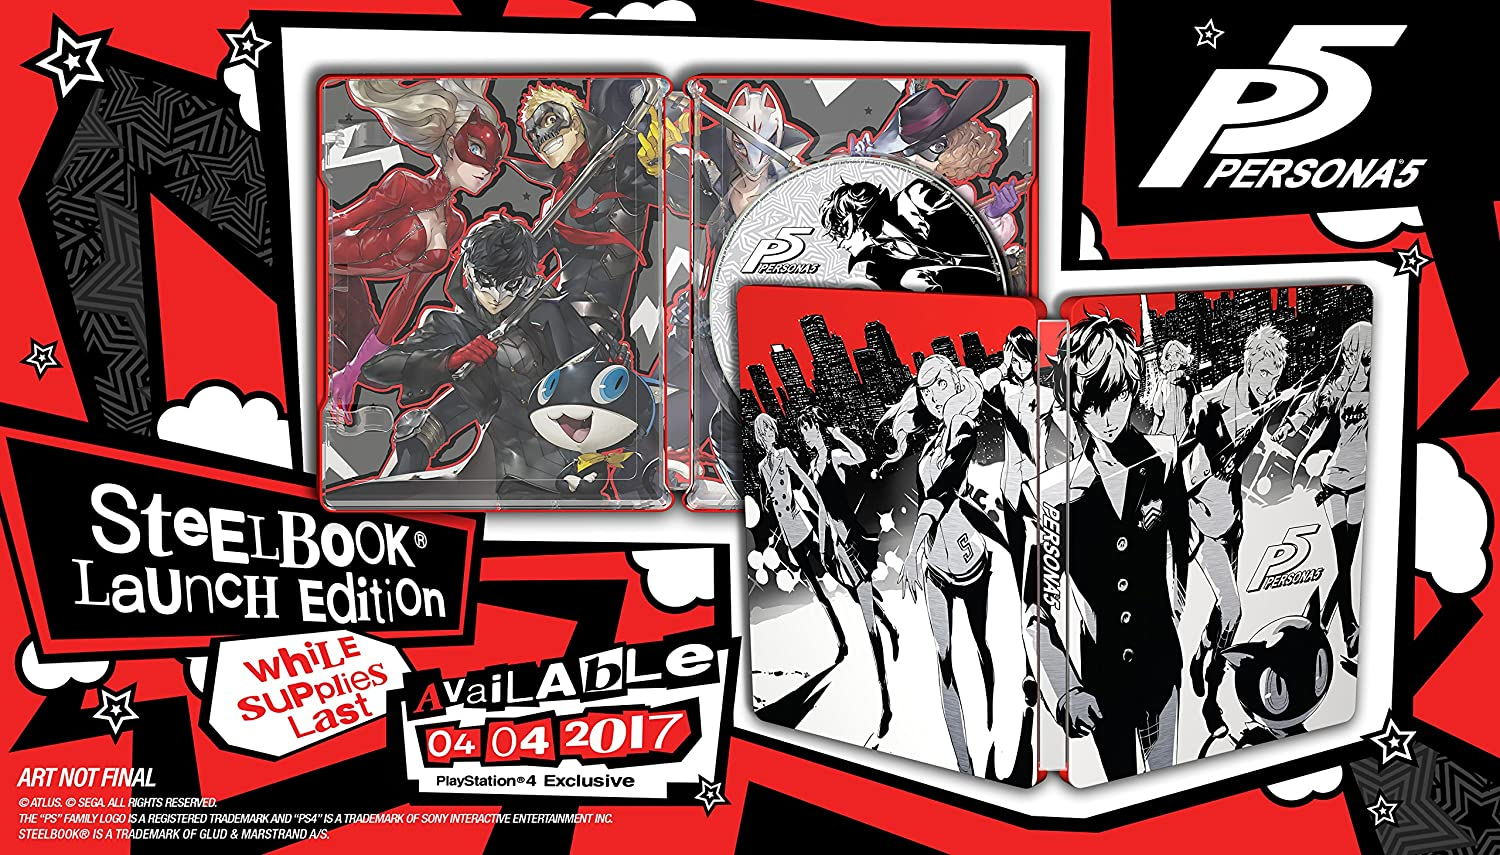 Persona 5 Ps4 Playstation Steelbook Launch Edition Case Only Video Games & Consoles No Game Disc